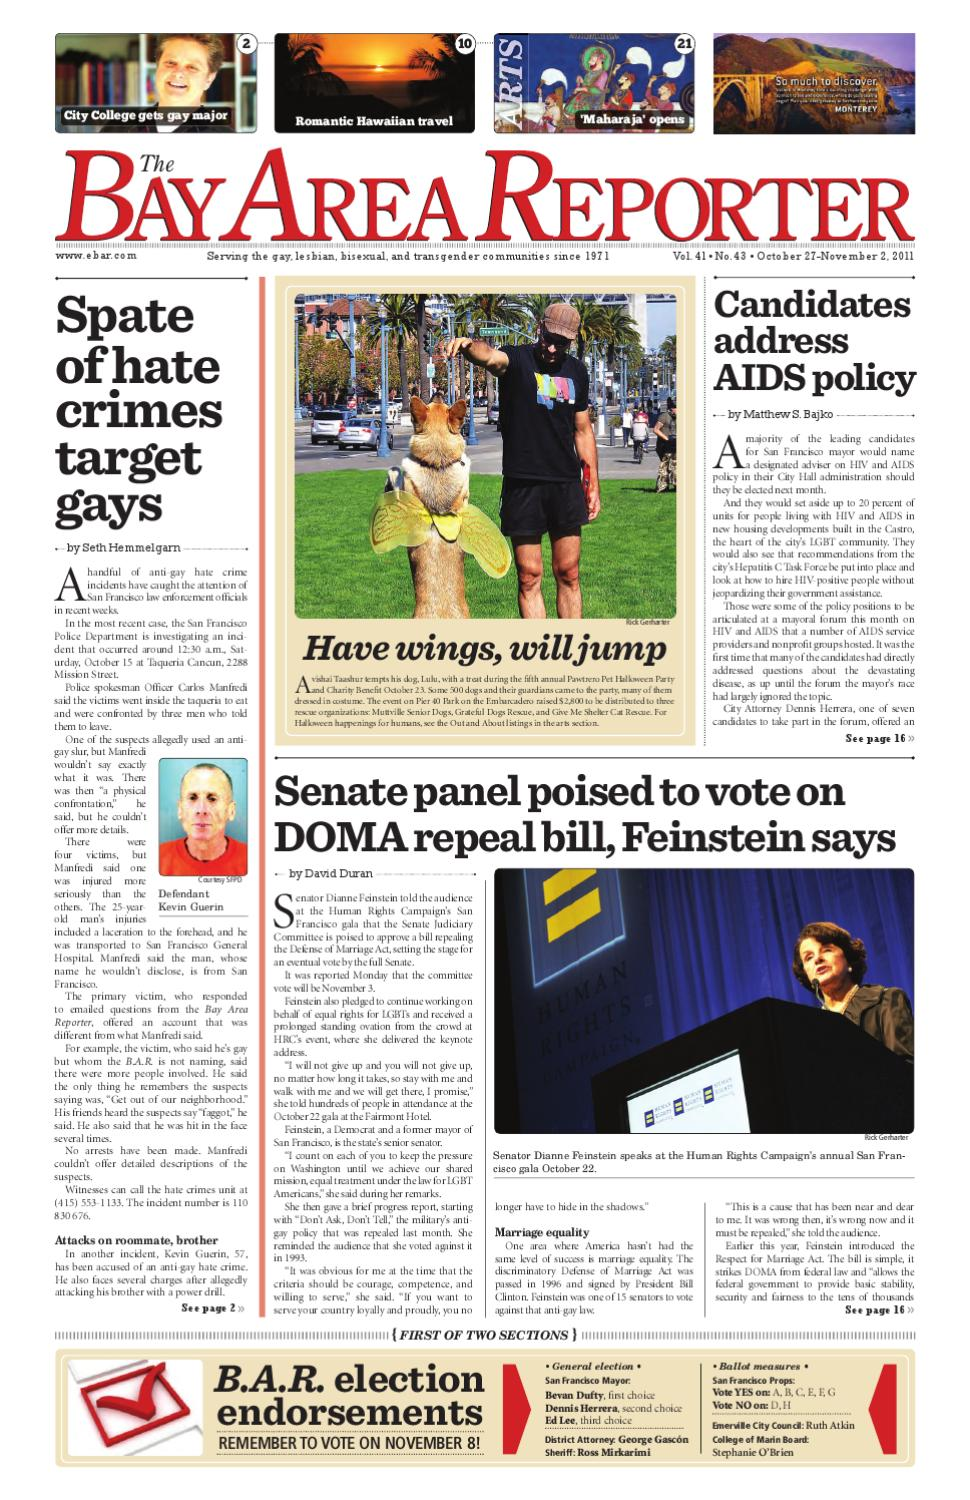 October 27, 2011 edition of the Bay Area Reporter